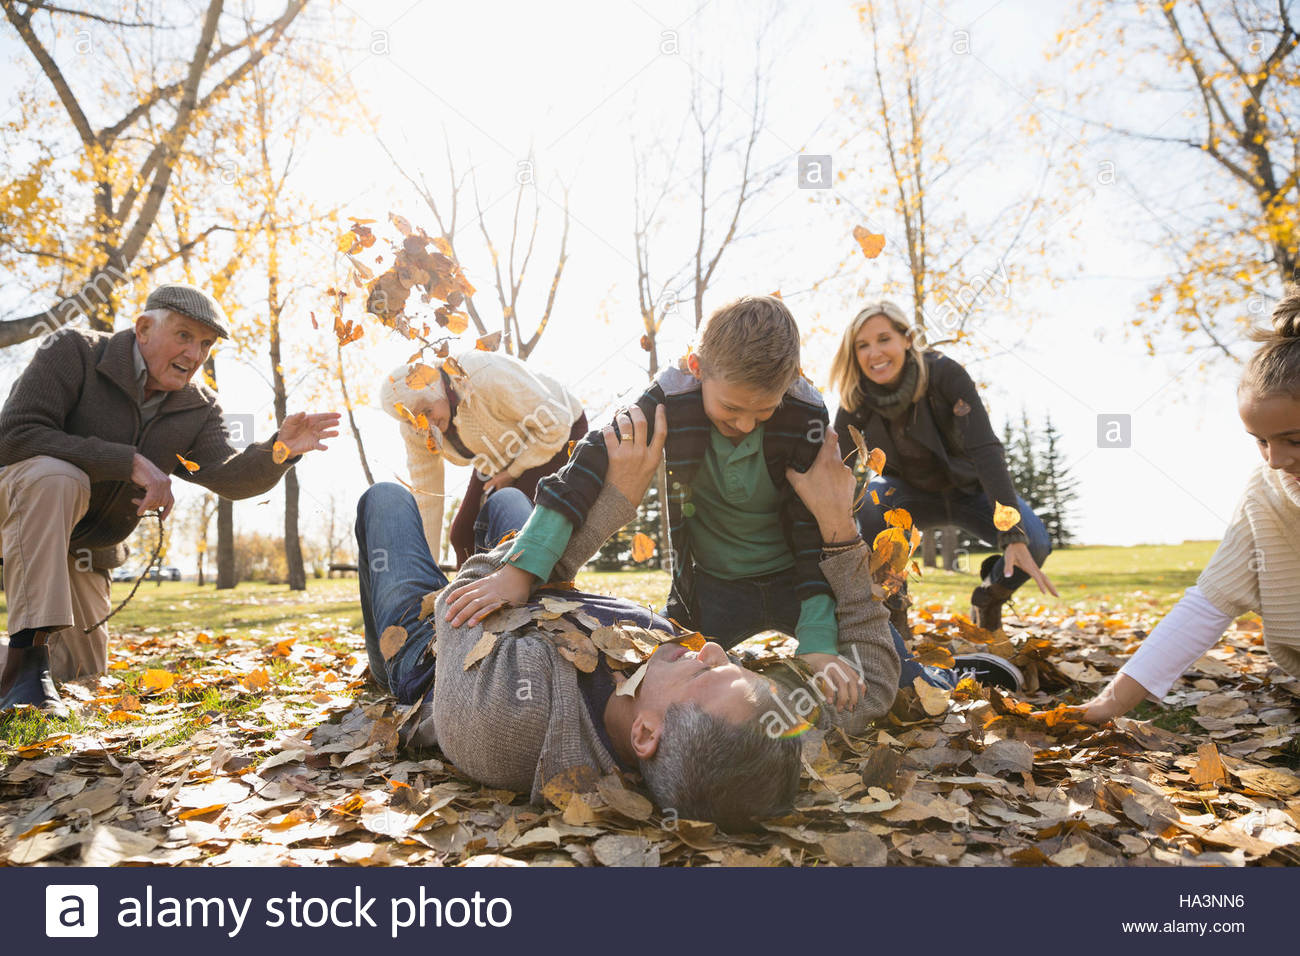 Family playing throwing autumn leaves in sunny park - Stock Image